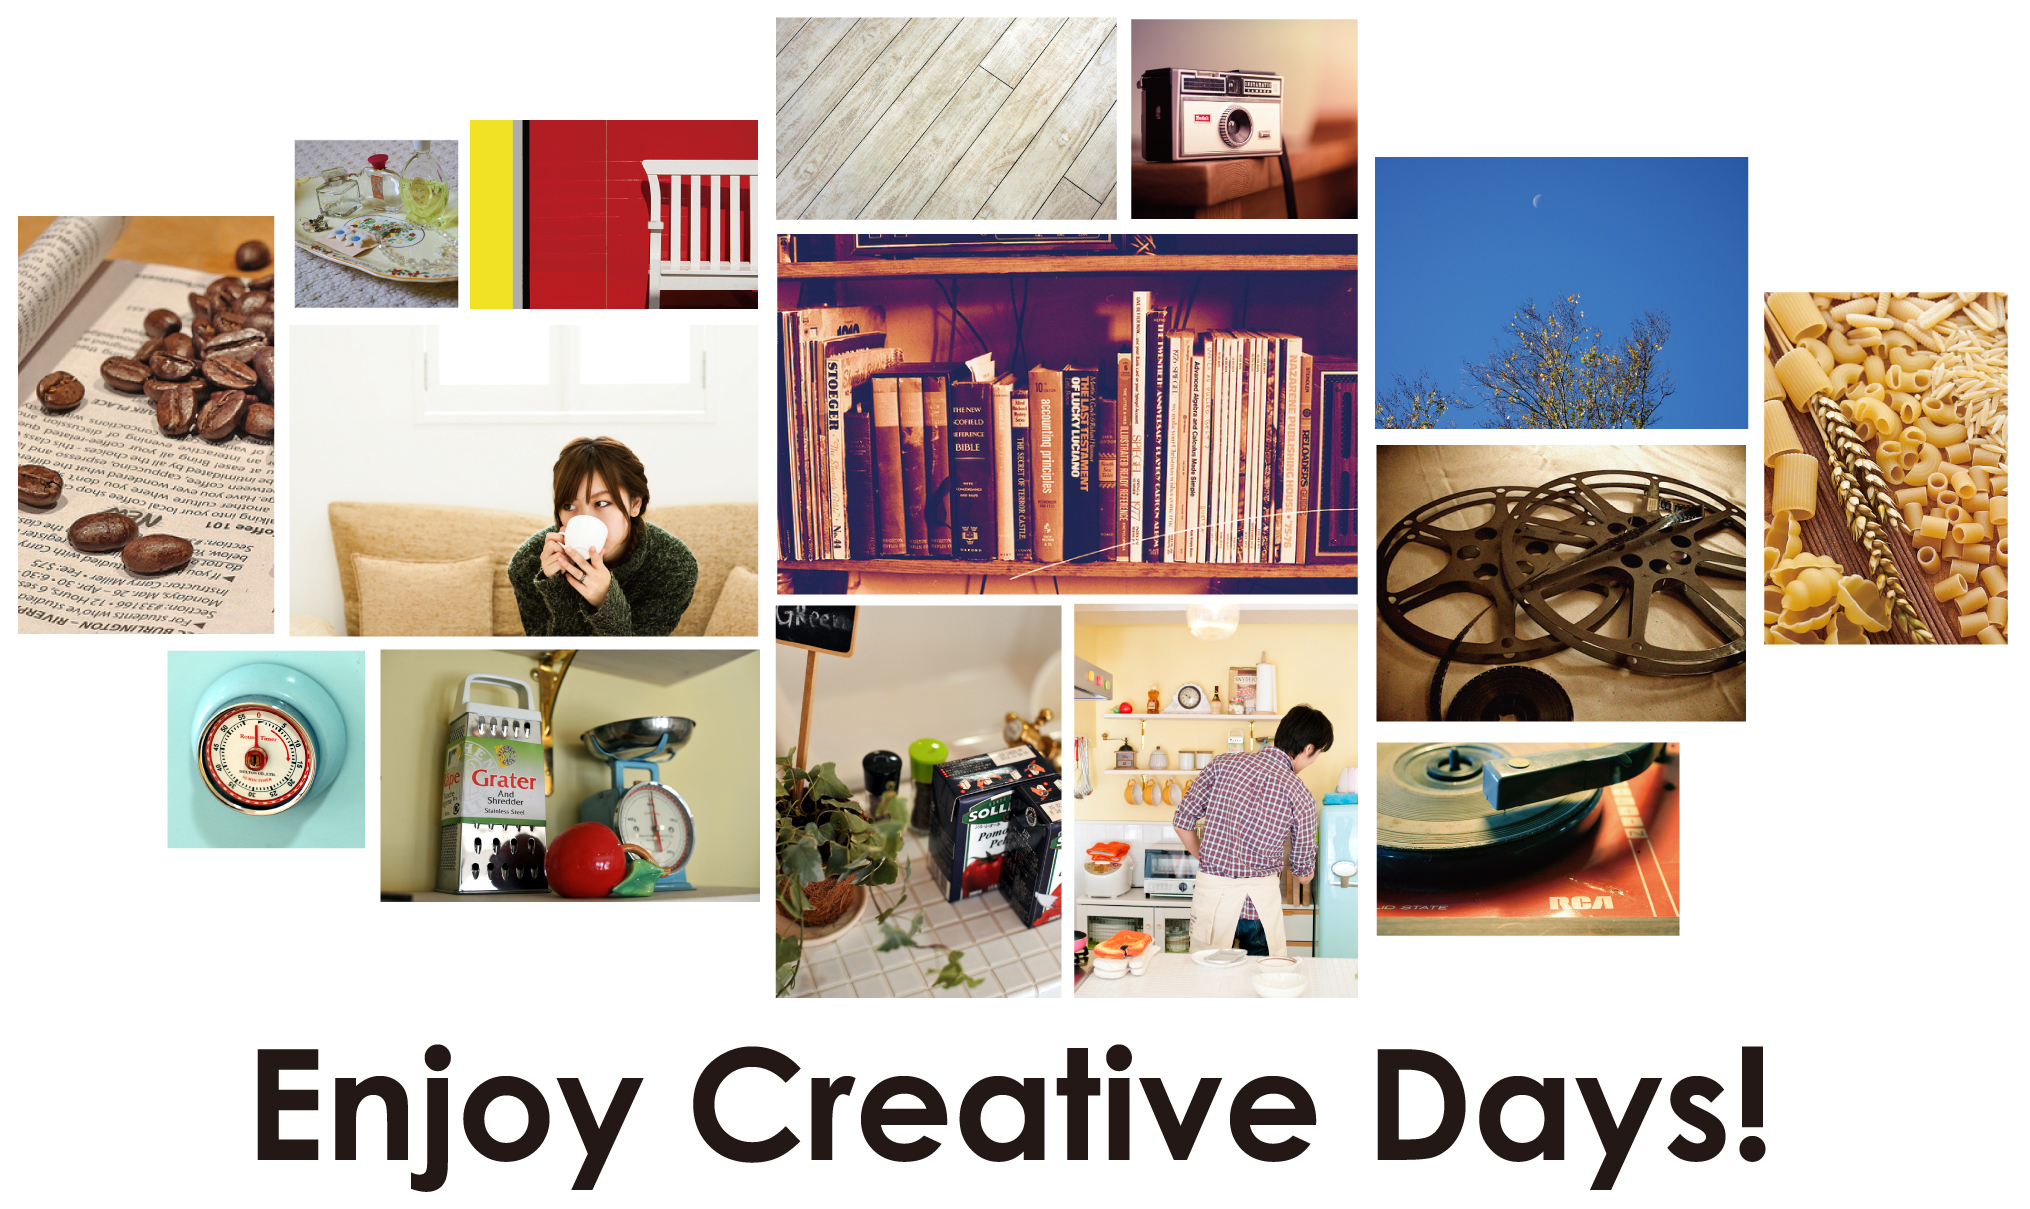 01_コンセプト_Enjoy  Creative Days!